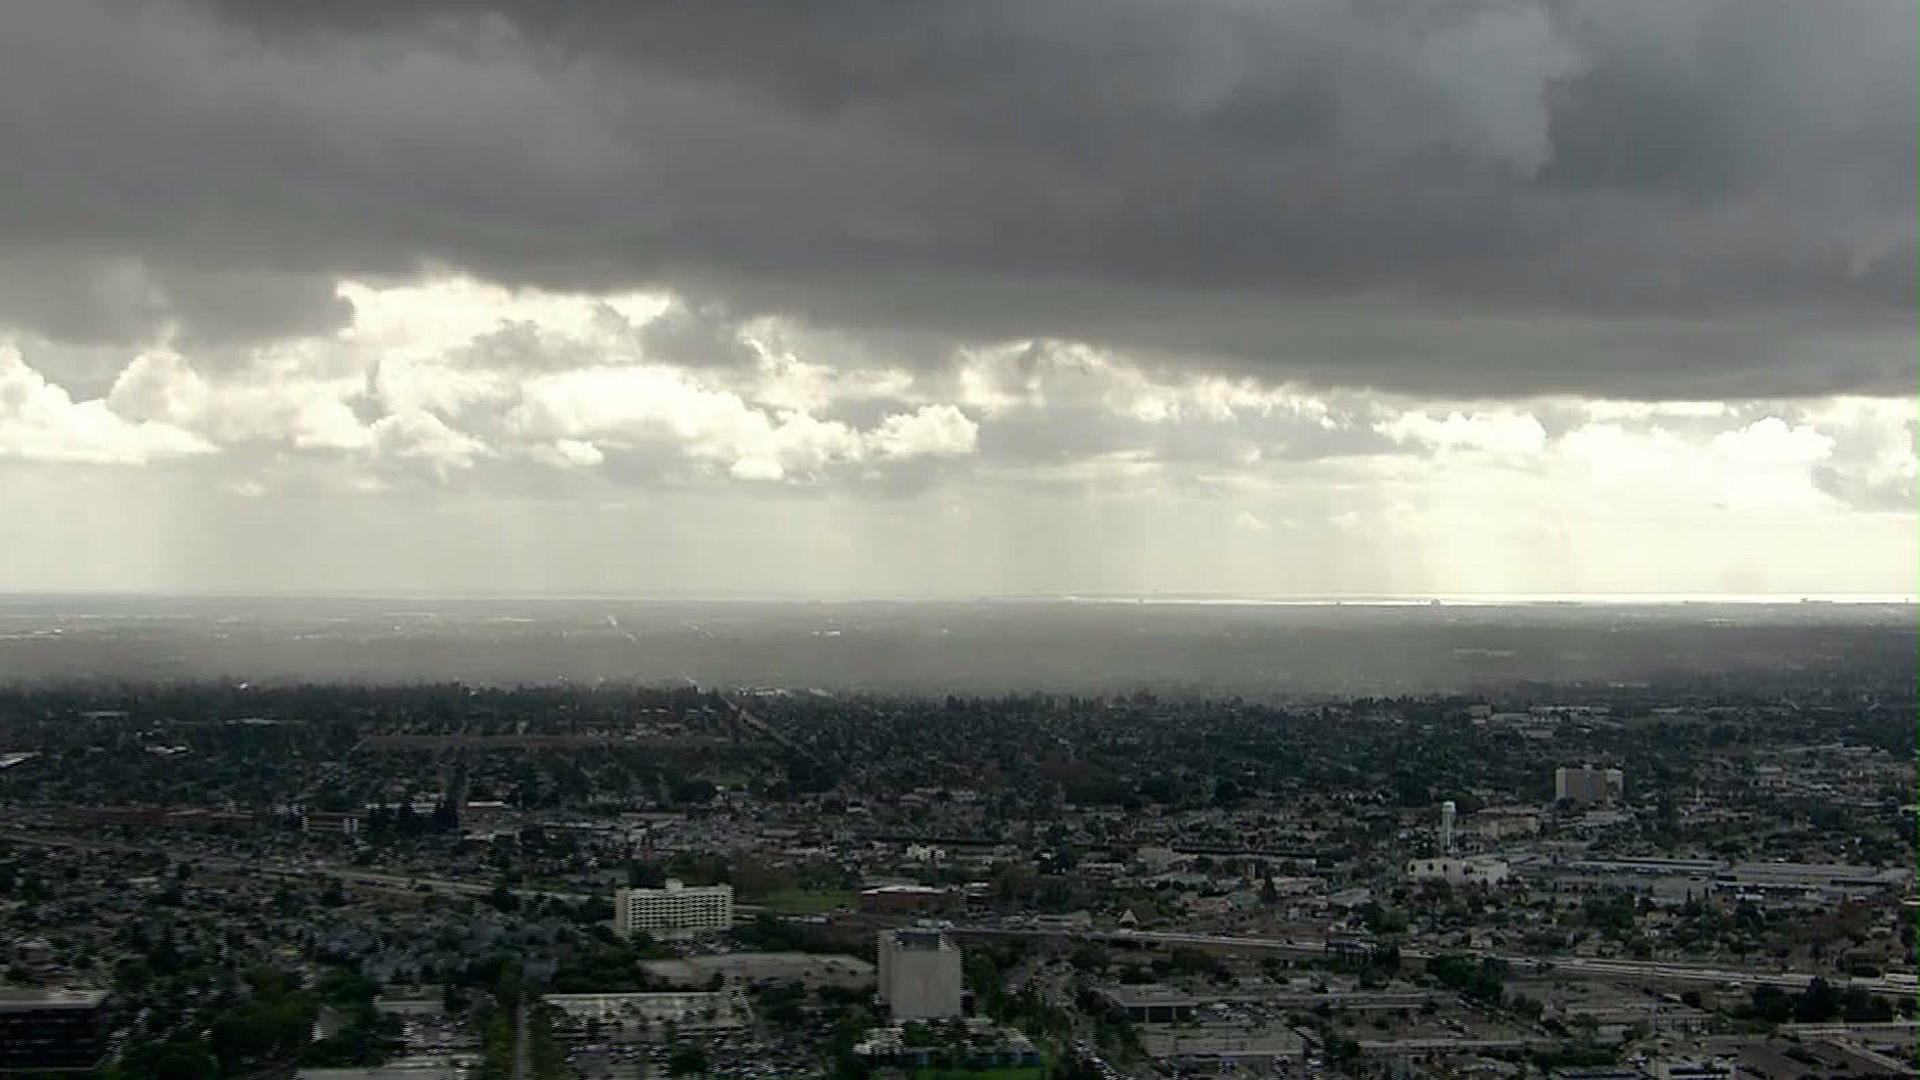 Storm clouds loom over Los Angeles